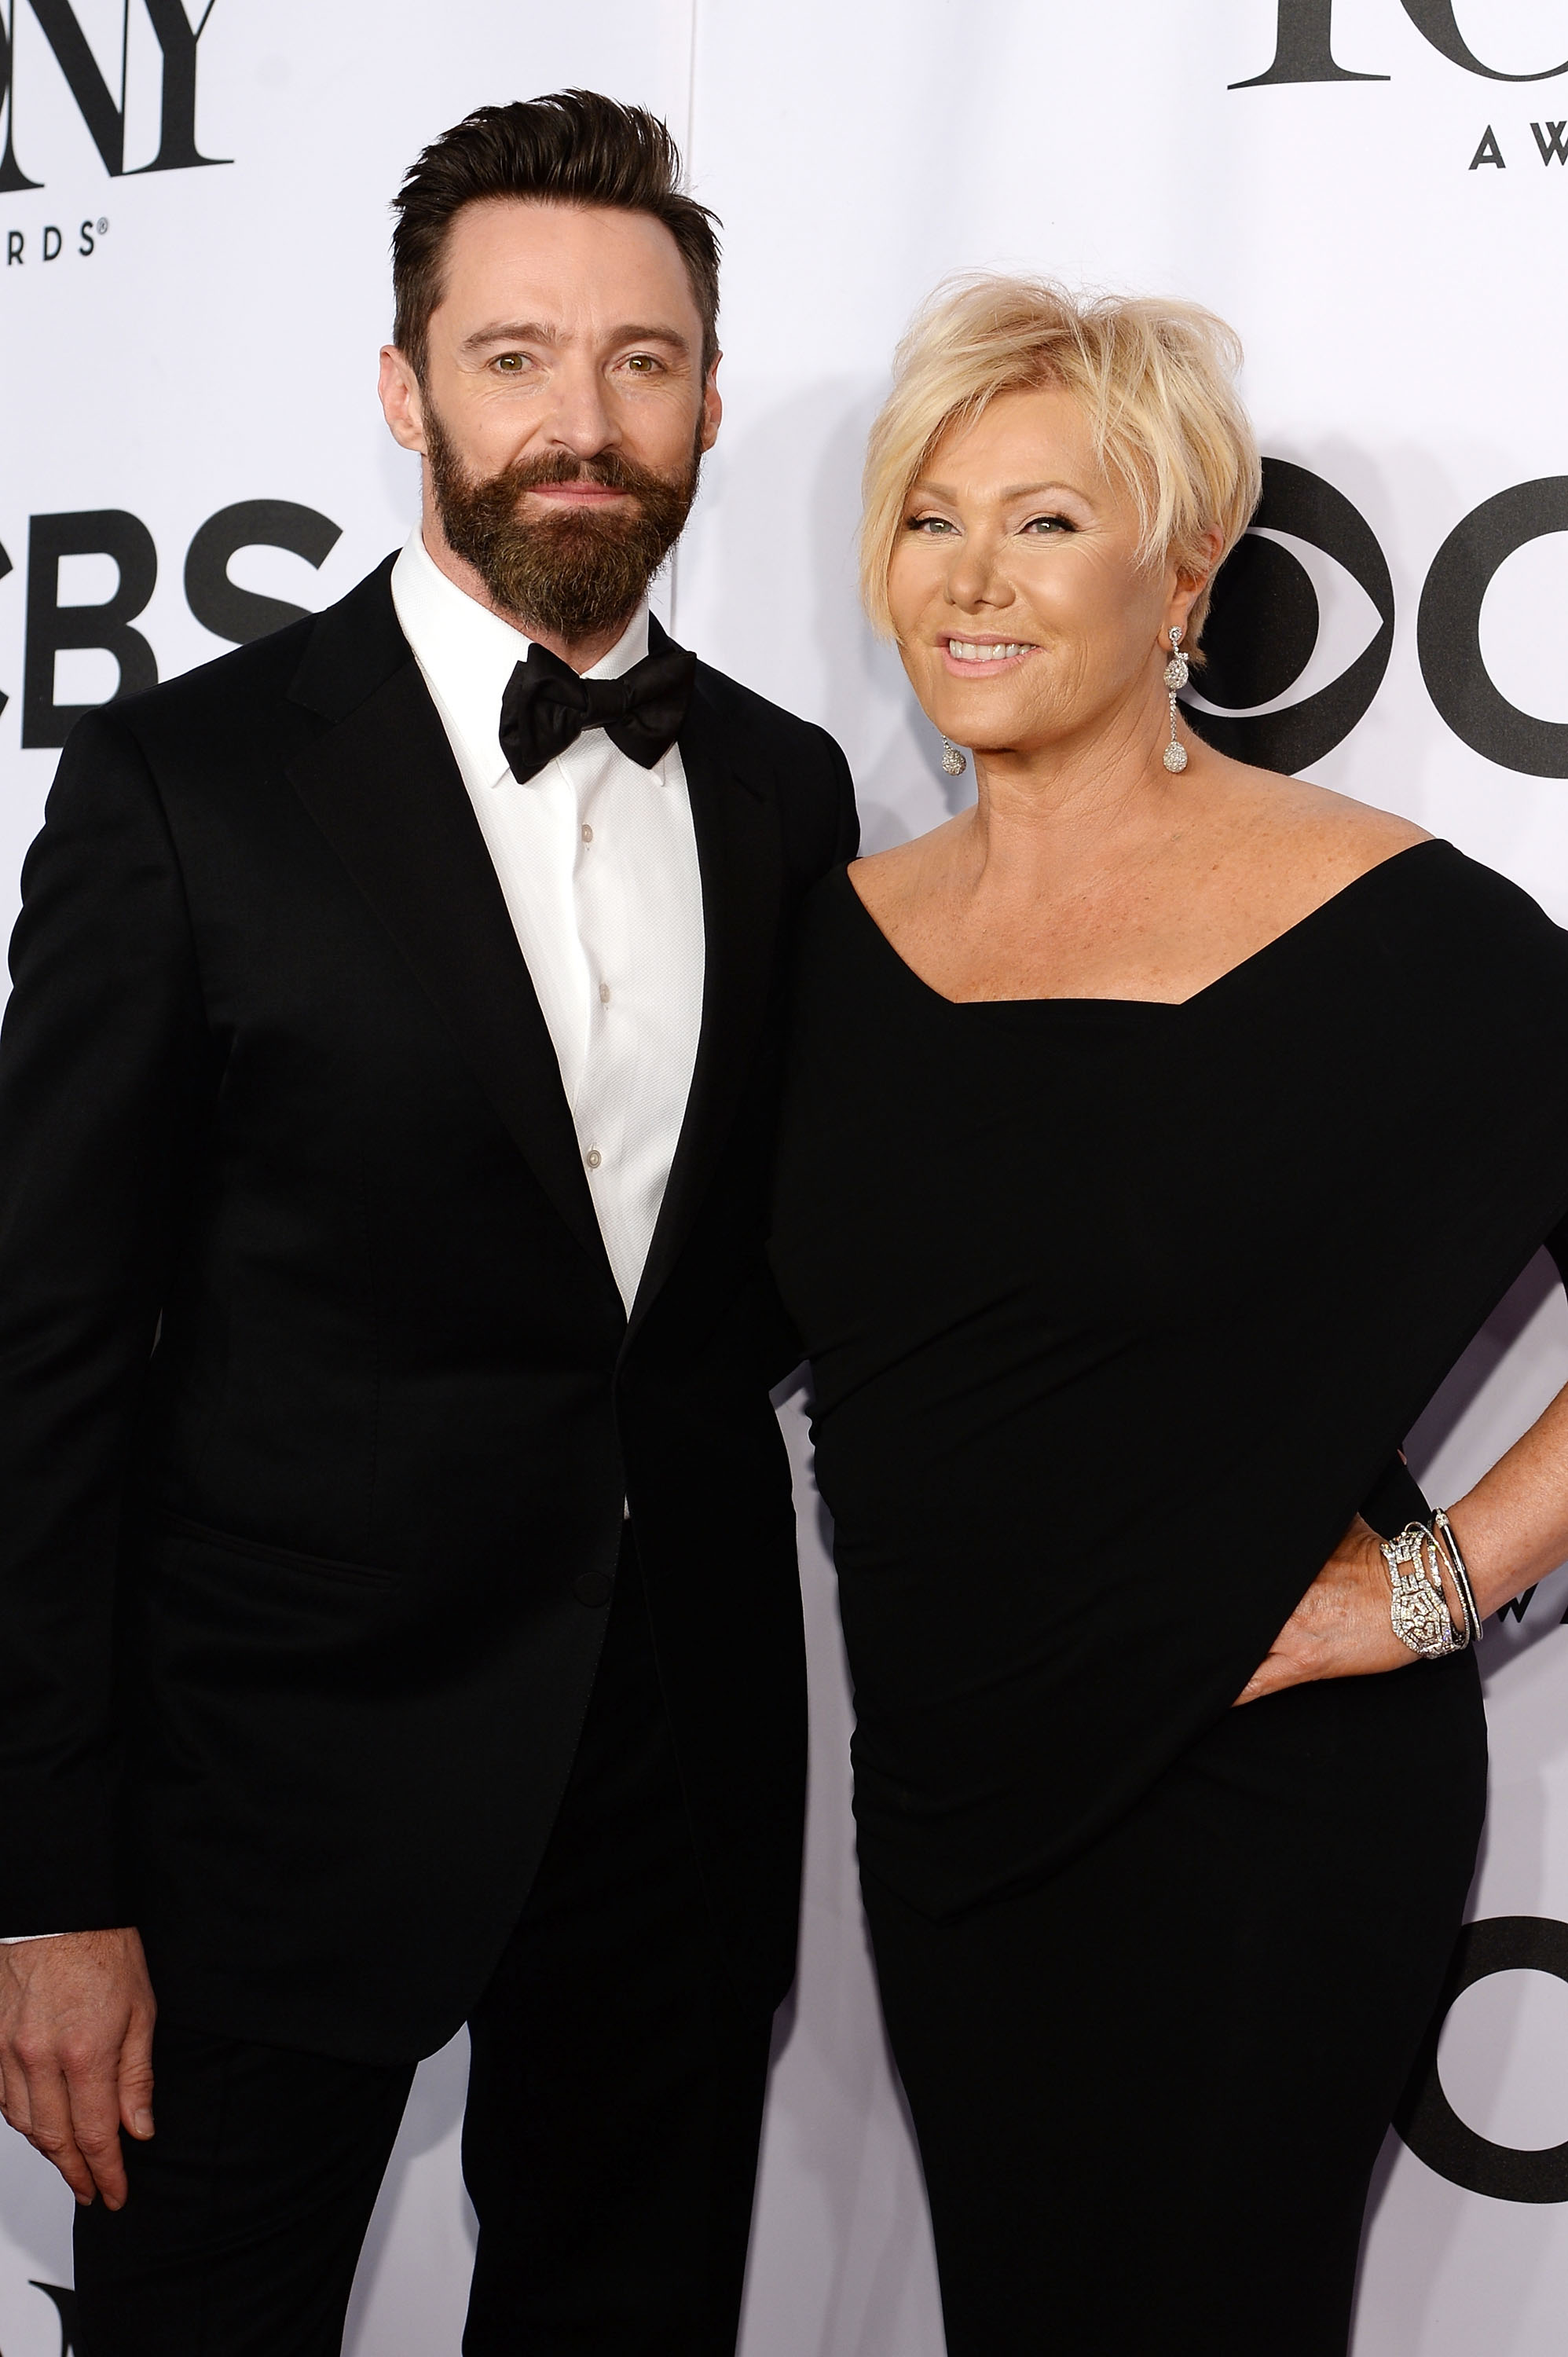 Host Hugh Jackman and Deborra-Lee Furness attend the 68th Annual Tony Awards at Radio City Music Hall on June 8, 2014 in New York City.